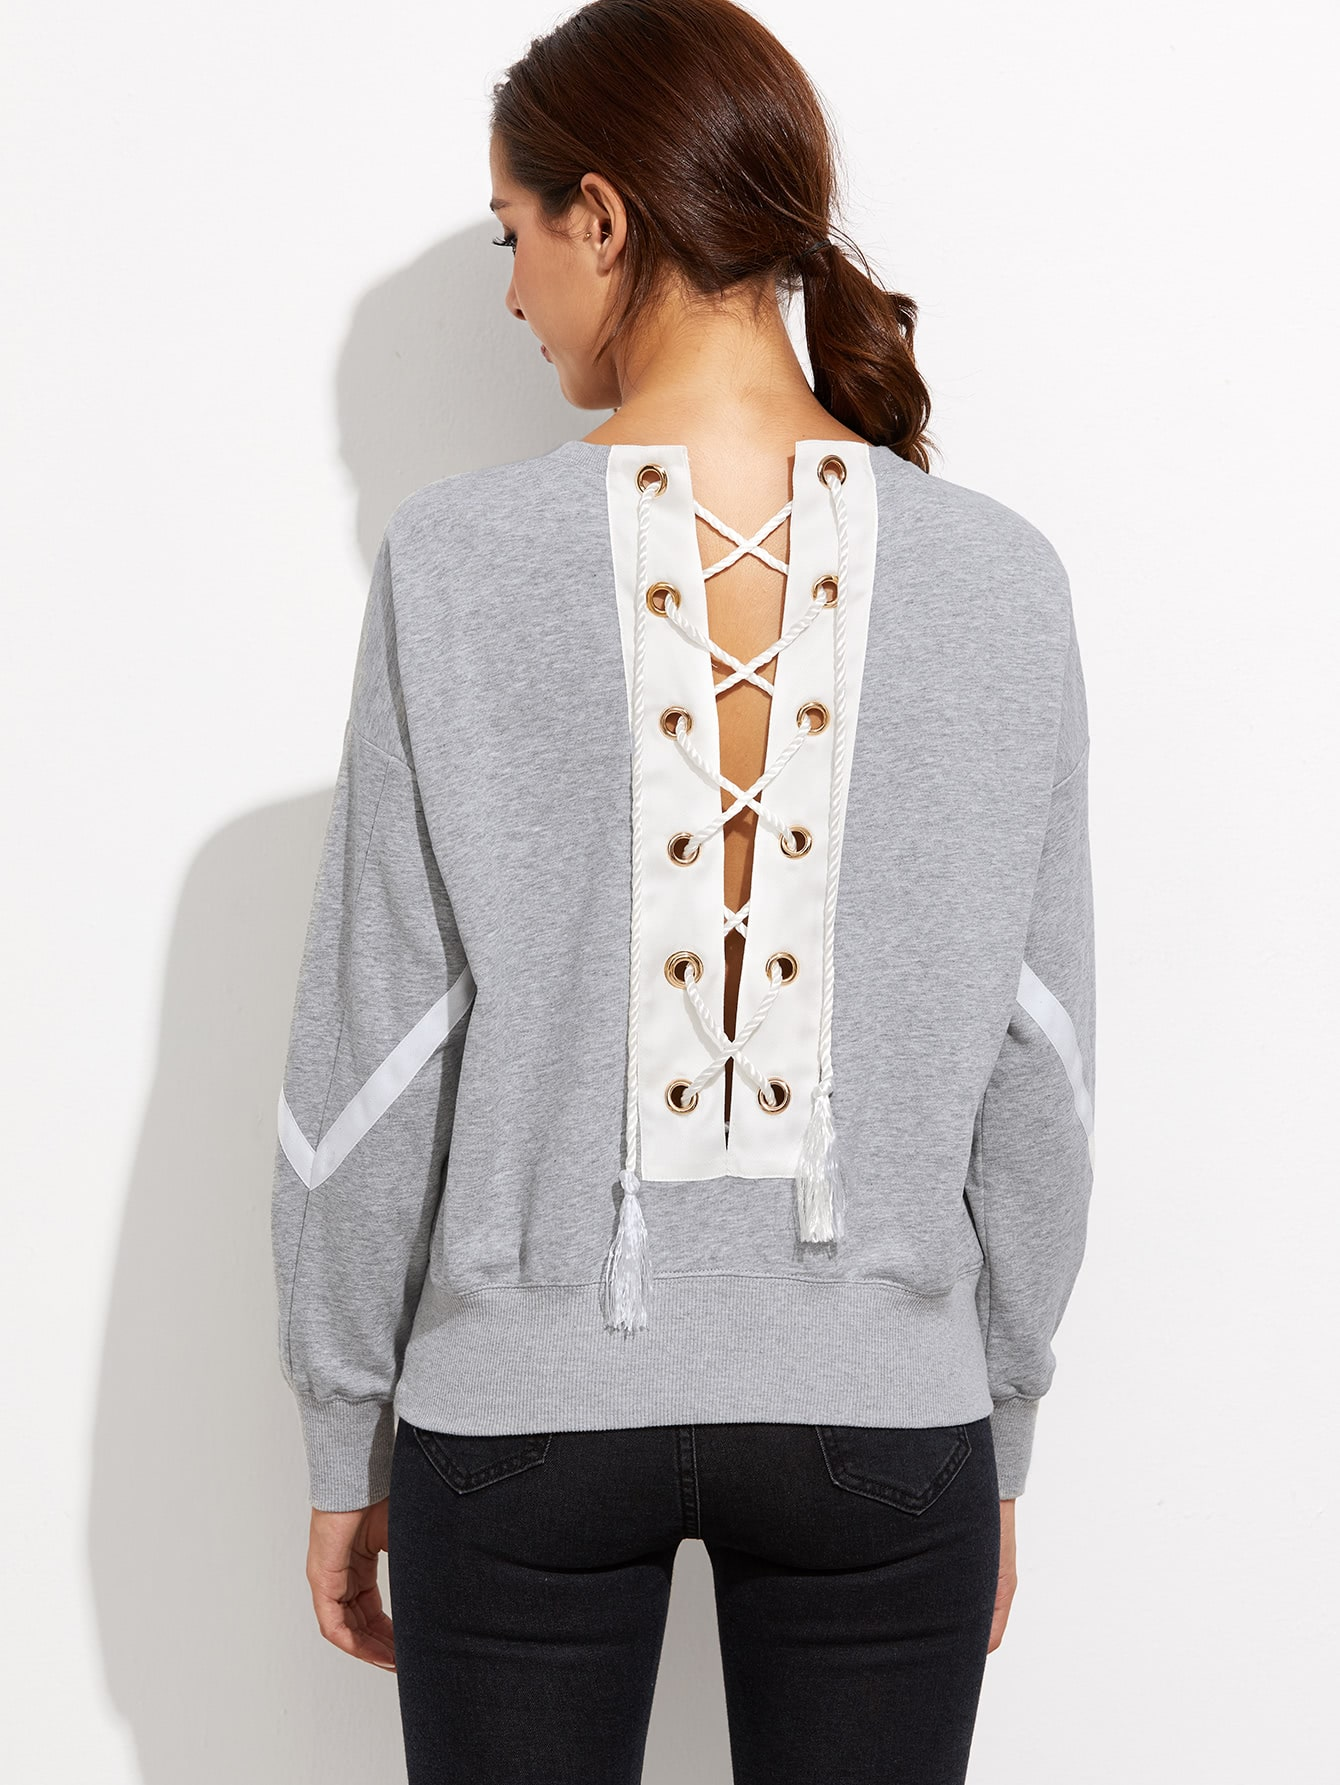 Grey Lace Up Back Drop Shoulder Stripe SweatshirtGrey Lace Up Back Drop Shoulder Stripe Sweatshirt<br><br>color: Grey<br>size: M,S